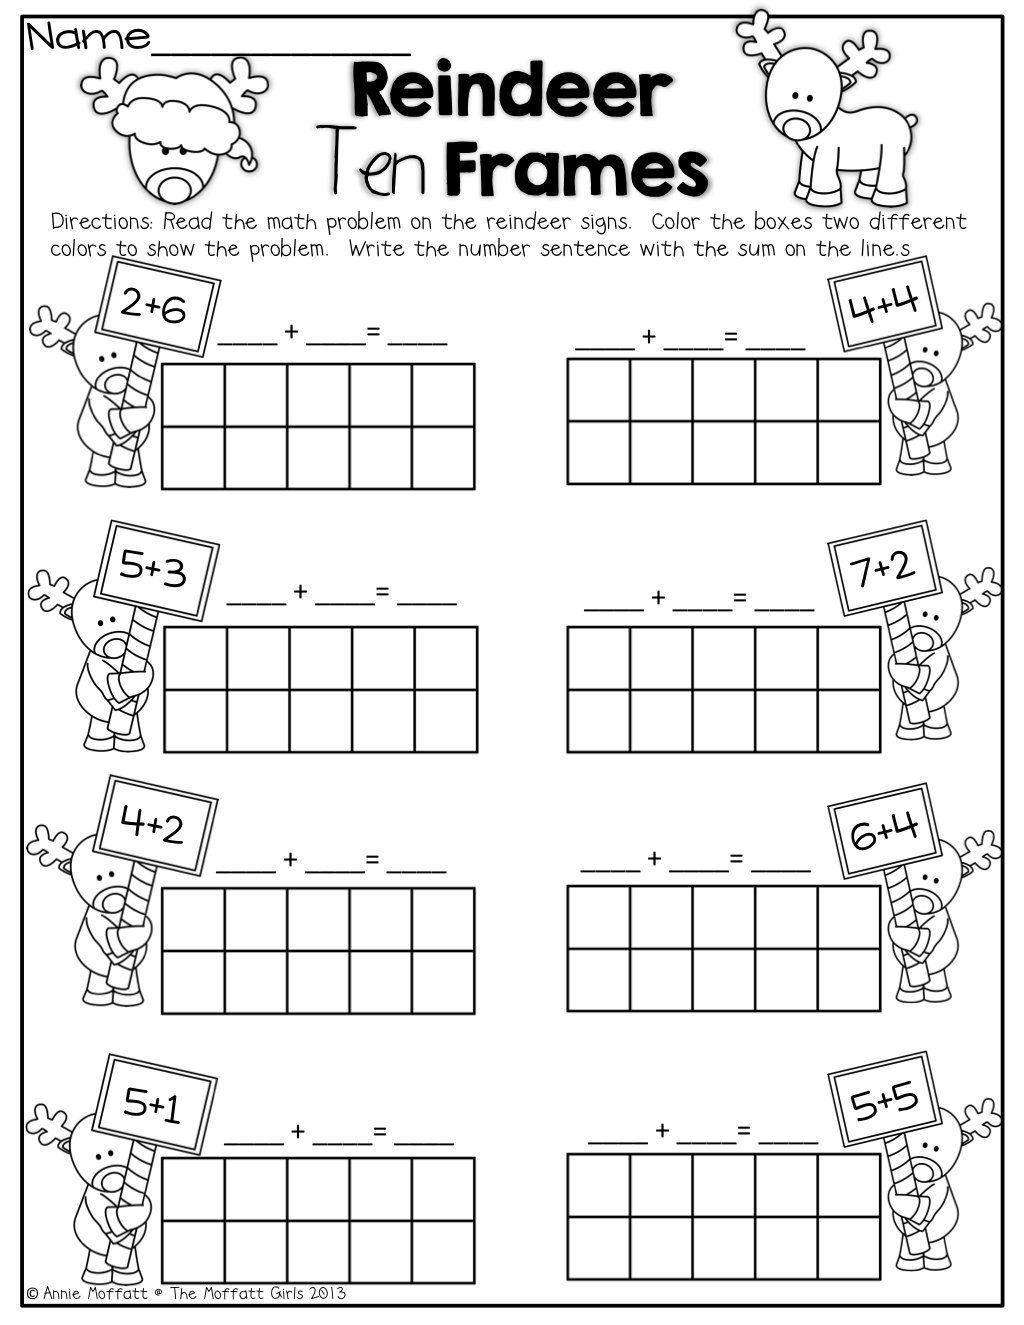 Reindeer Ten Frames! Simple math problems with ten frames ...